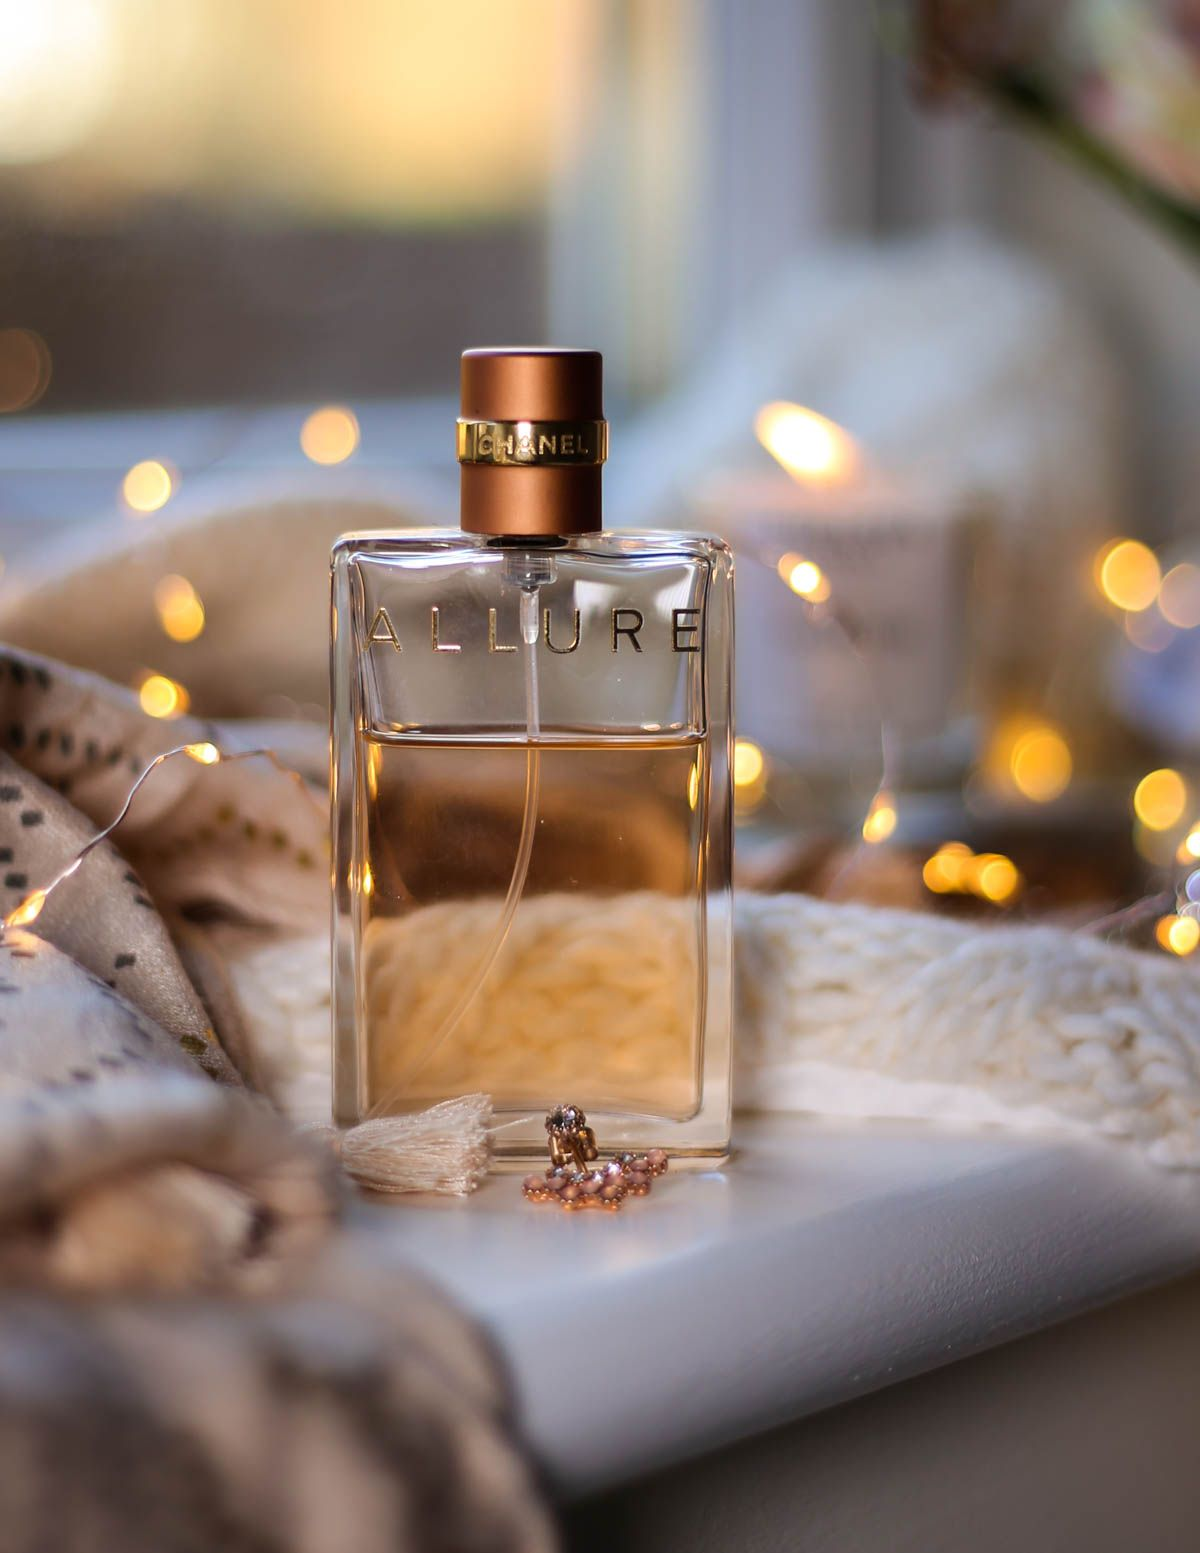 Blog Photography | How to Be More Creative With Your Photos · Frankly  Flawless | Perfume, Fragrance photography, Perfume scents